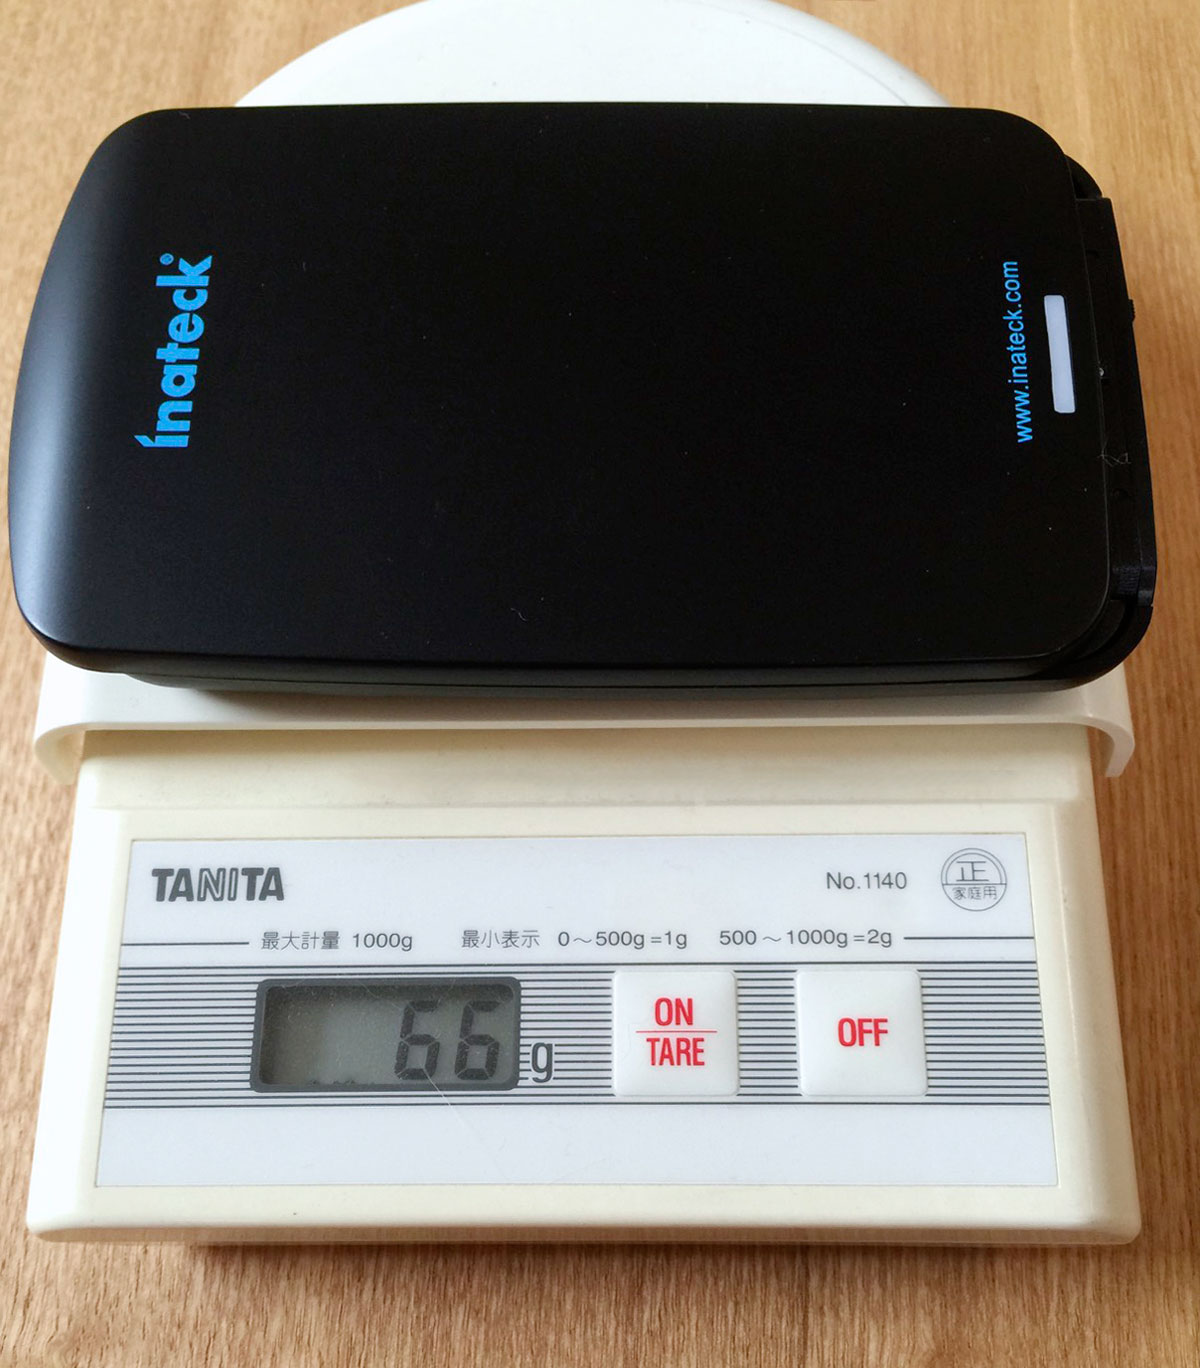 Inateck FEU3NS-1E USB 3.0 2.5インチSSD/HDDケースの重さ